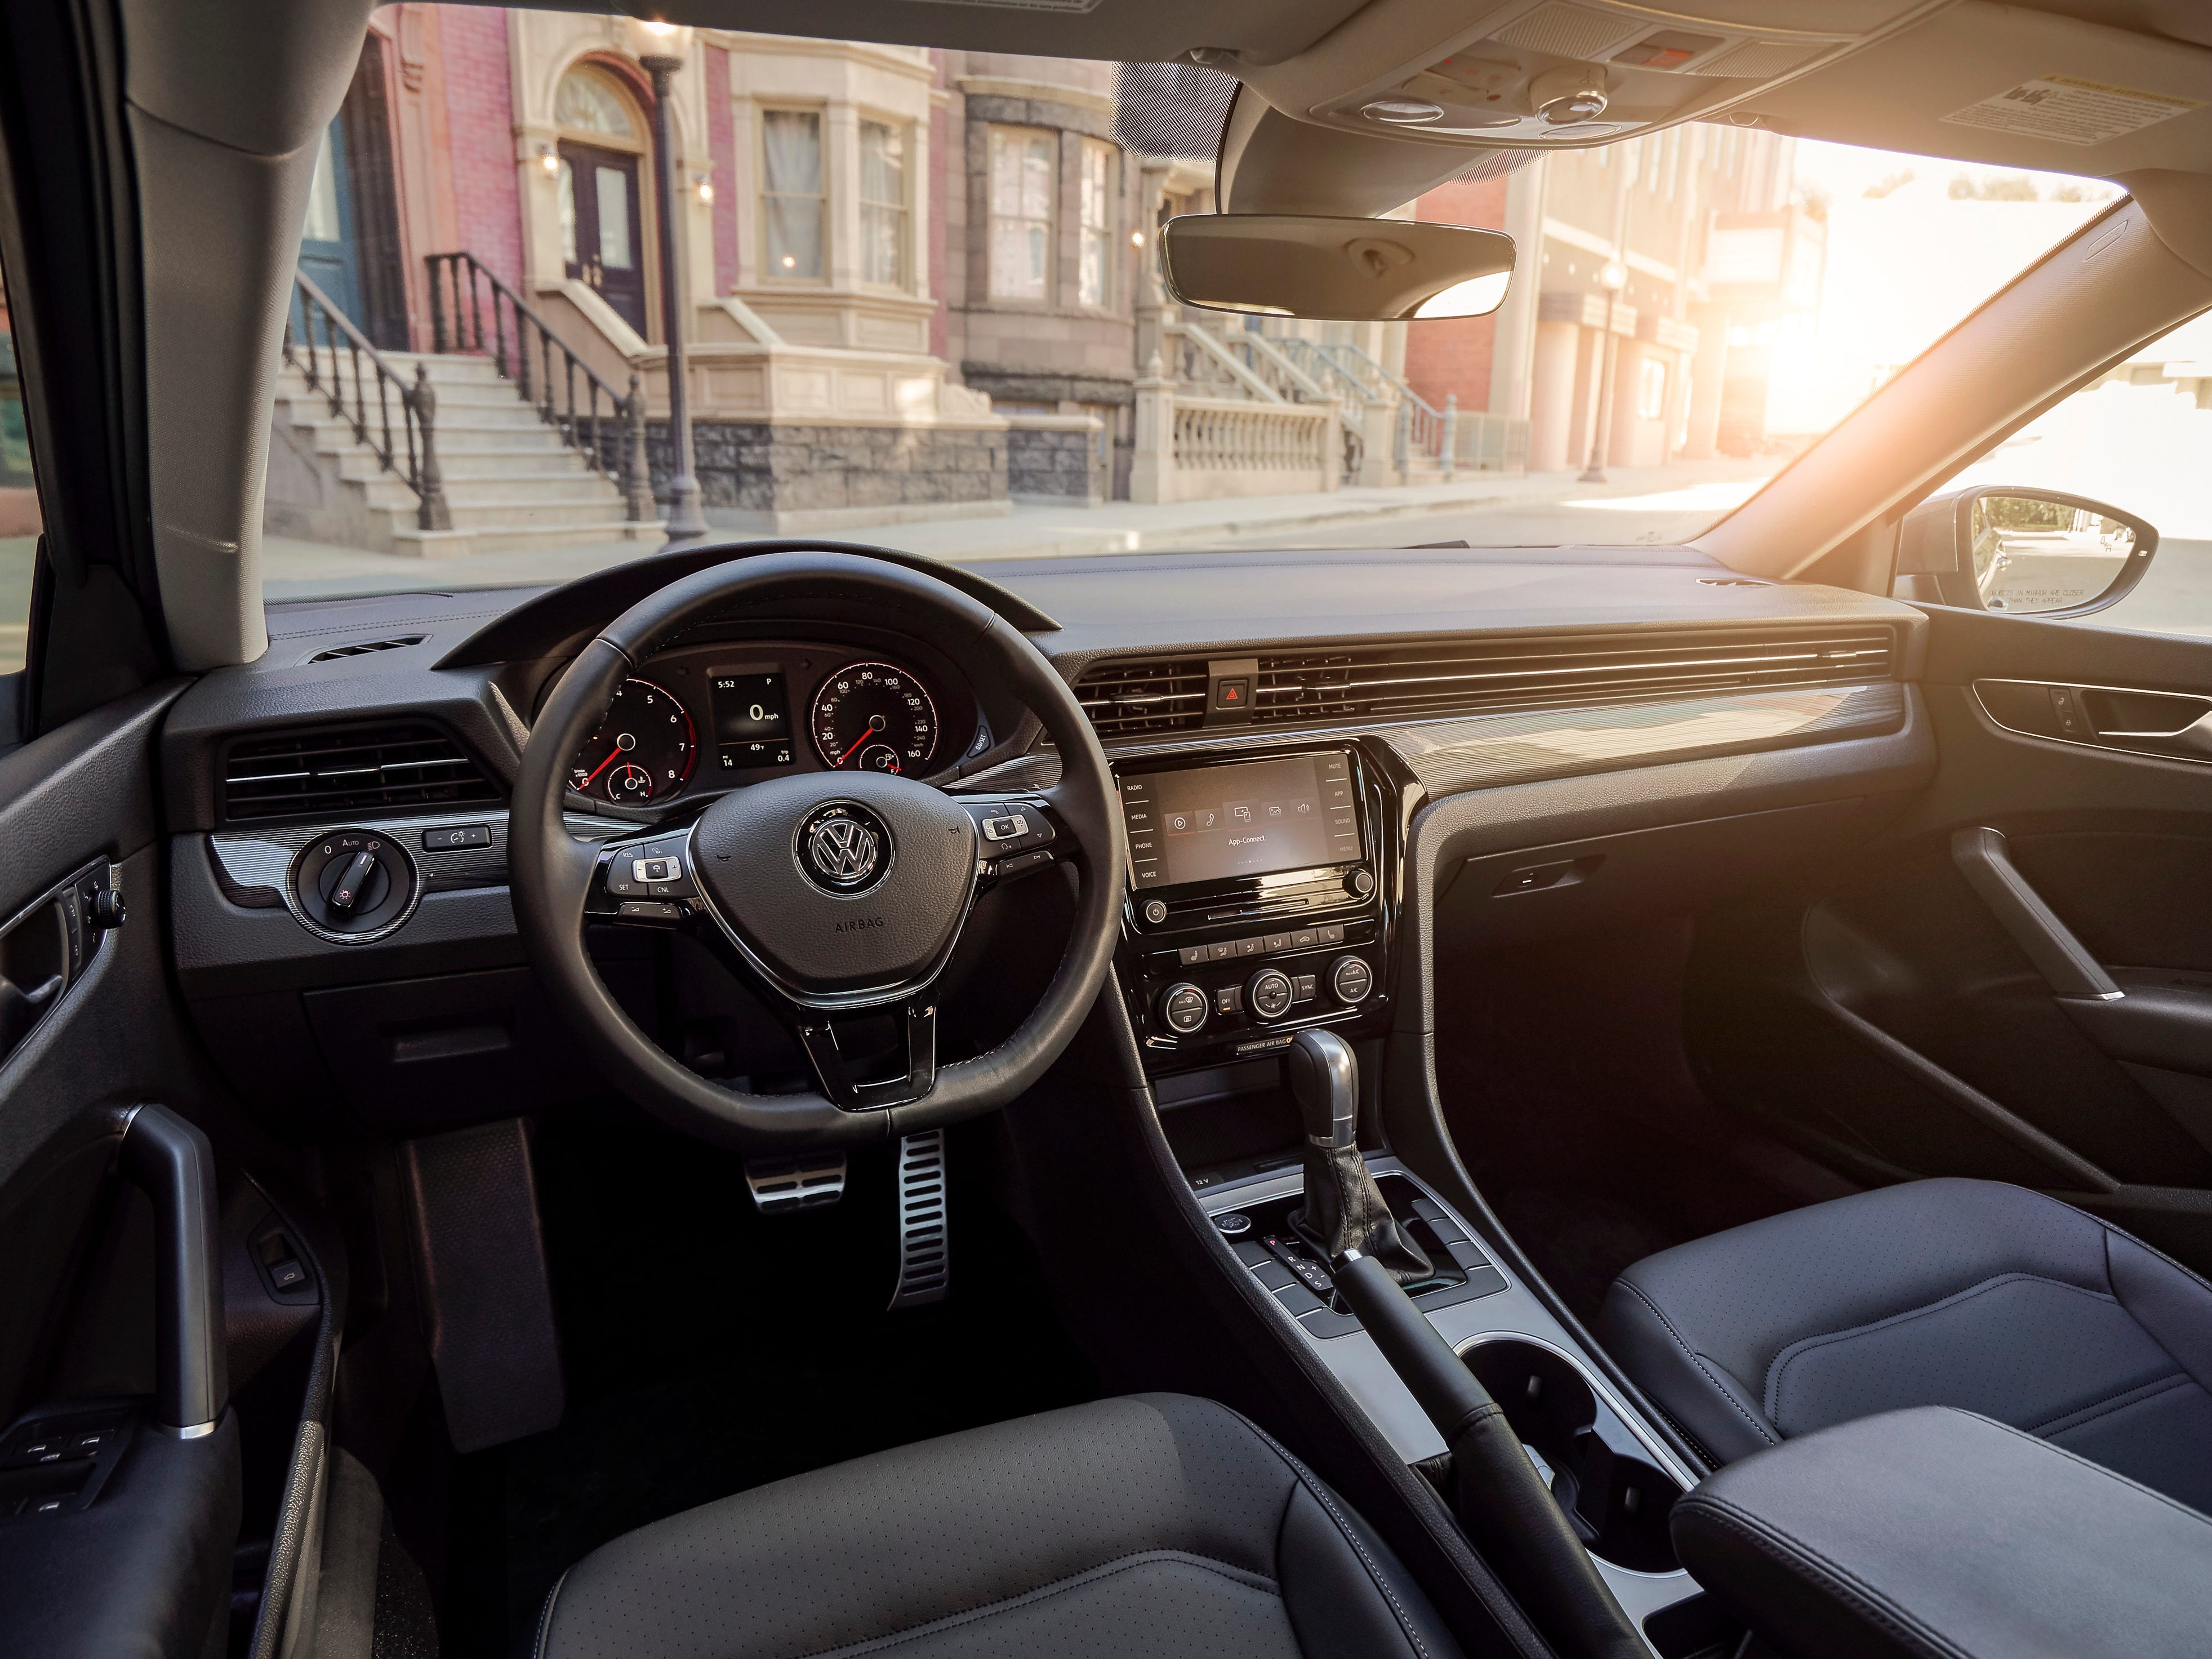 Inside, the Passat combines a sophisticated new design and upgraded technology with a spacious cabin.   The cockpit features a horizontal design, incorporating air vents that flow across the dash in a style reminiscent of premium models.